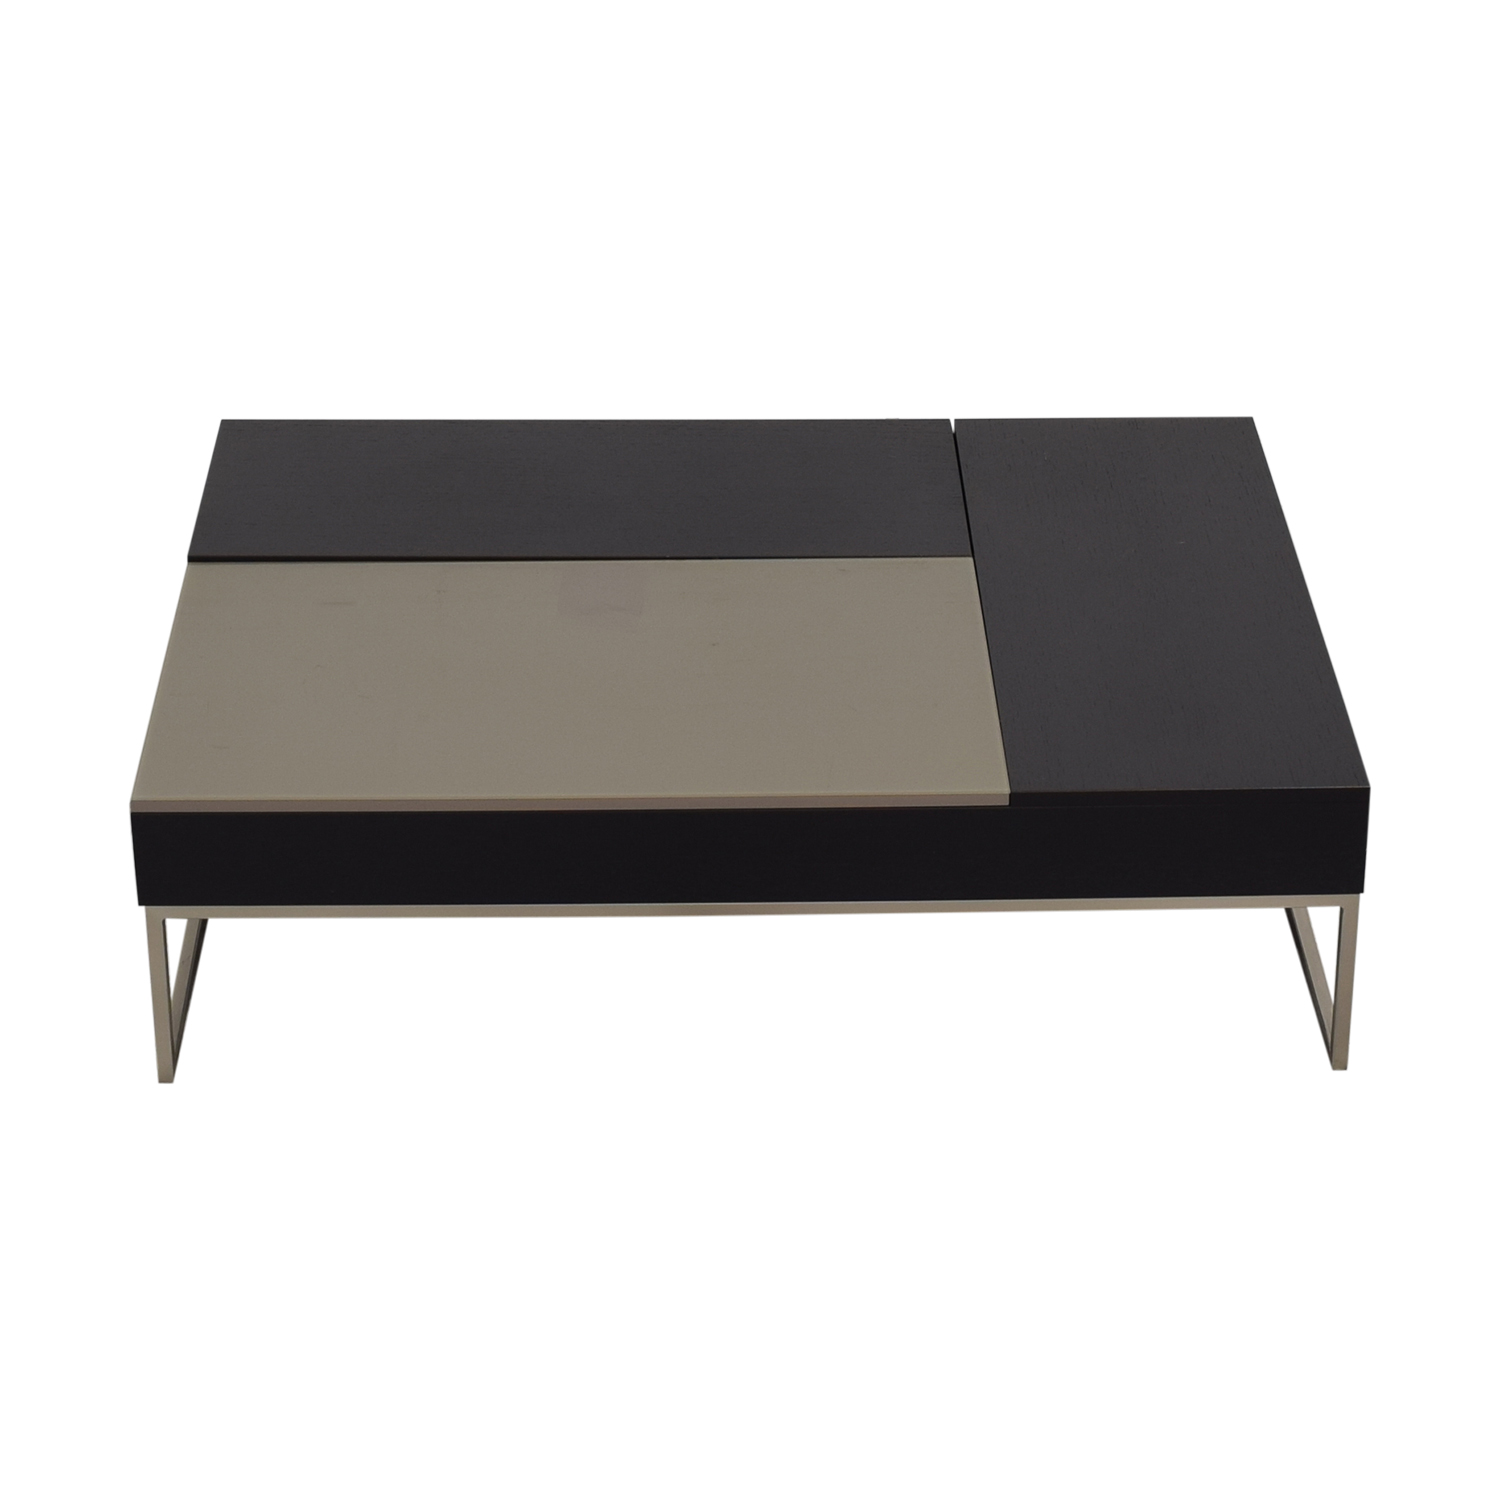 BoConcept BoConcept Chiva Functional Storage Coffee Table dimensions